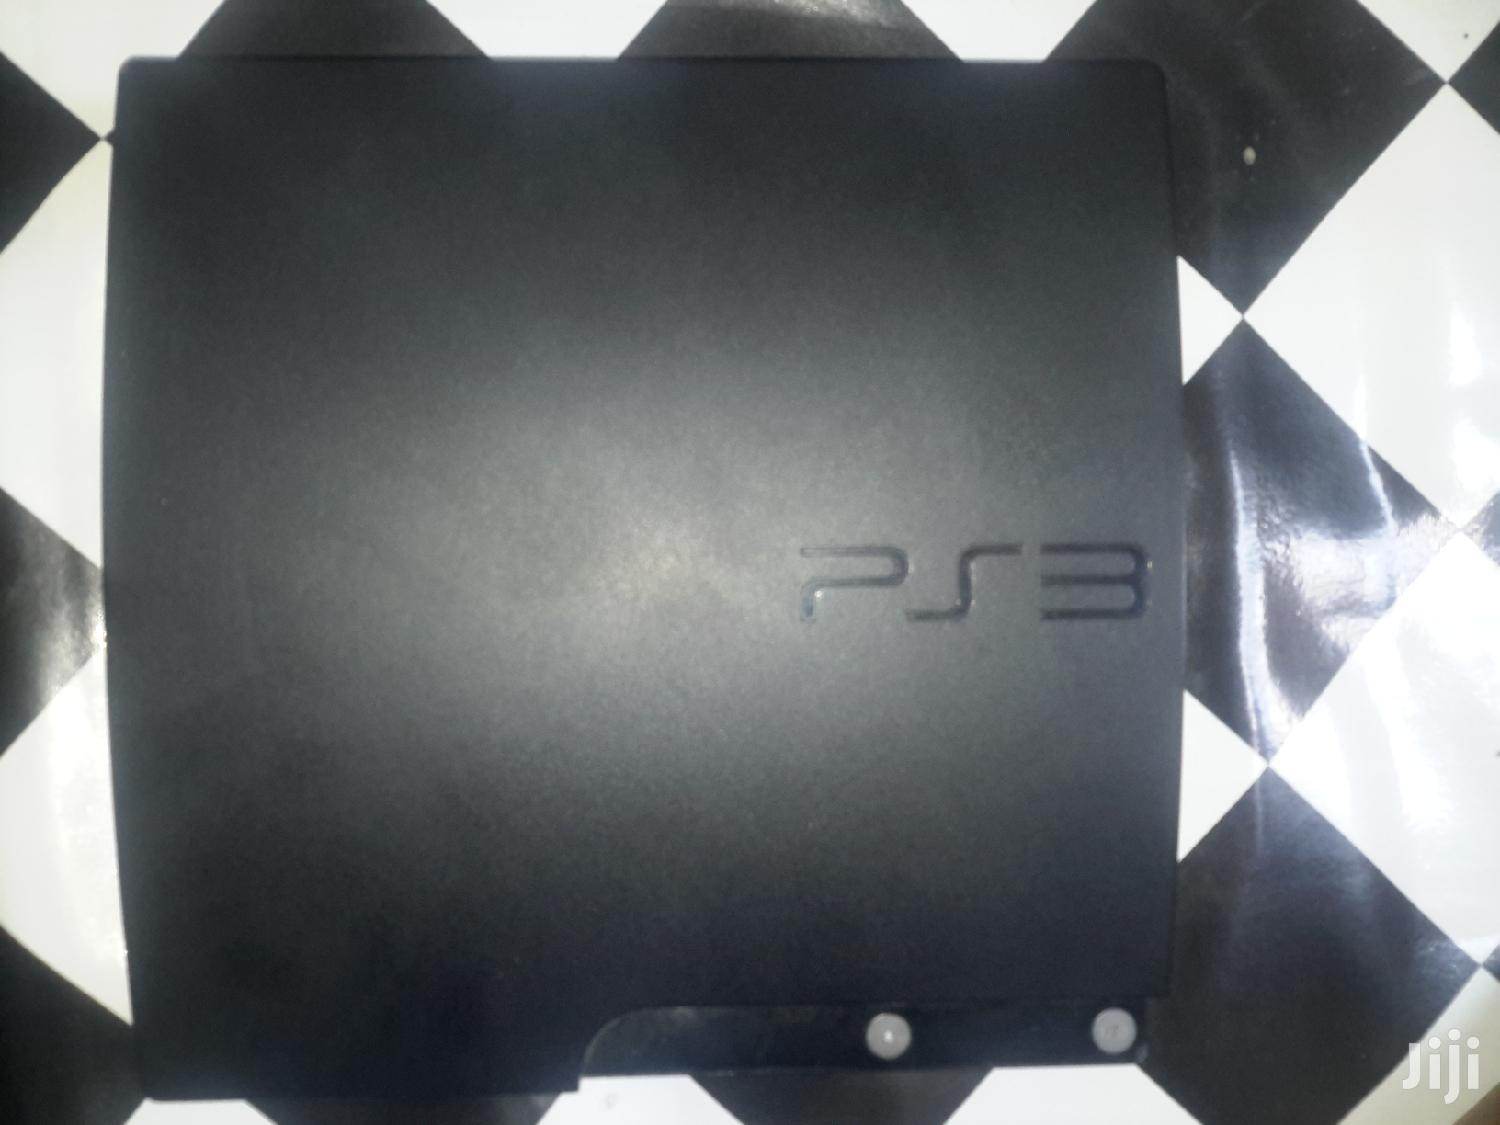 Archive: Sony Playstation 3